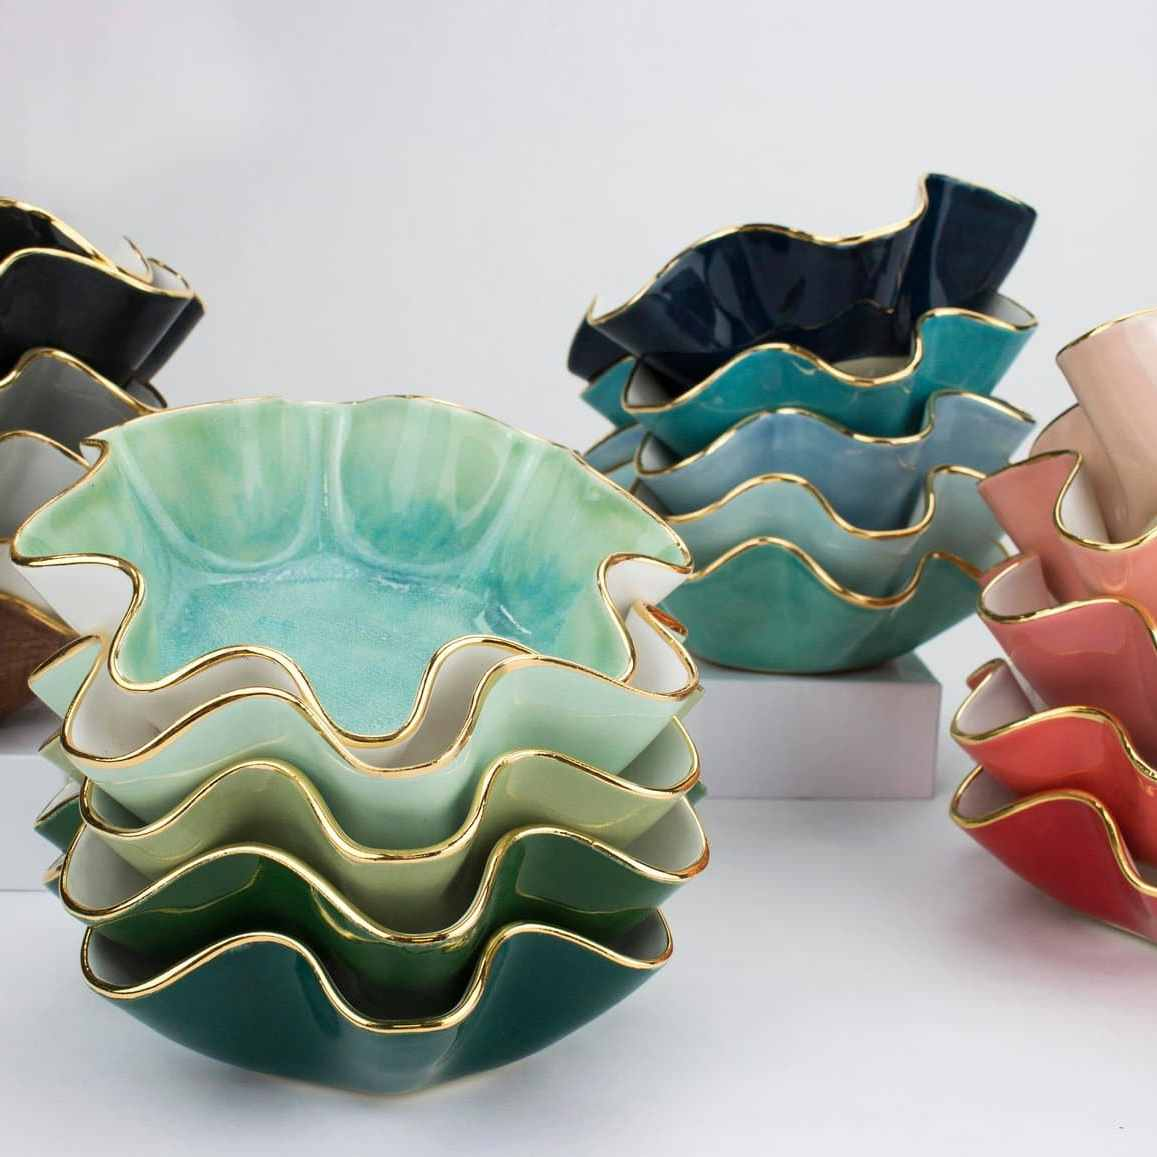 Birmingham, Susan Gordon Pottery, Susan Gordon, pottery, Etsy, ceramics, art